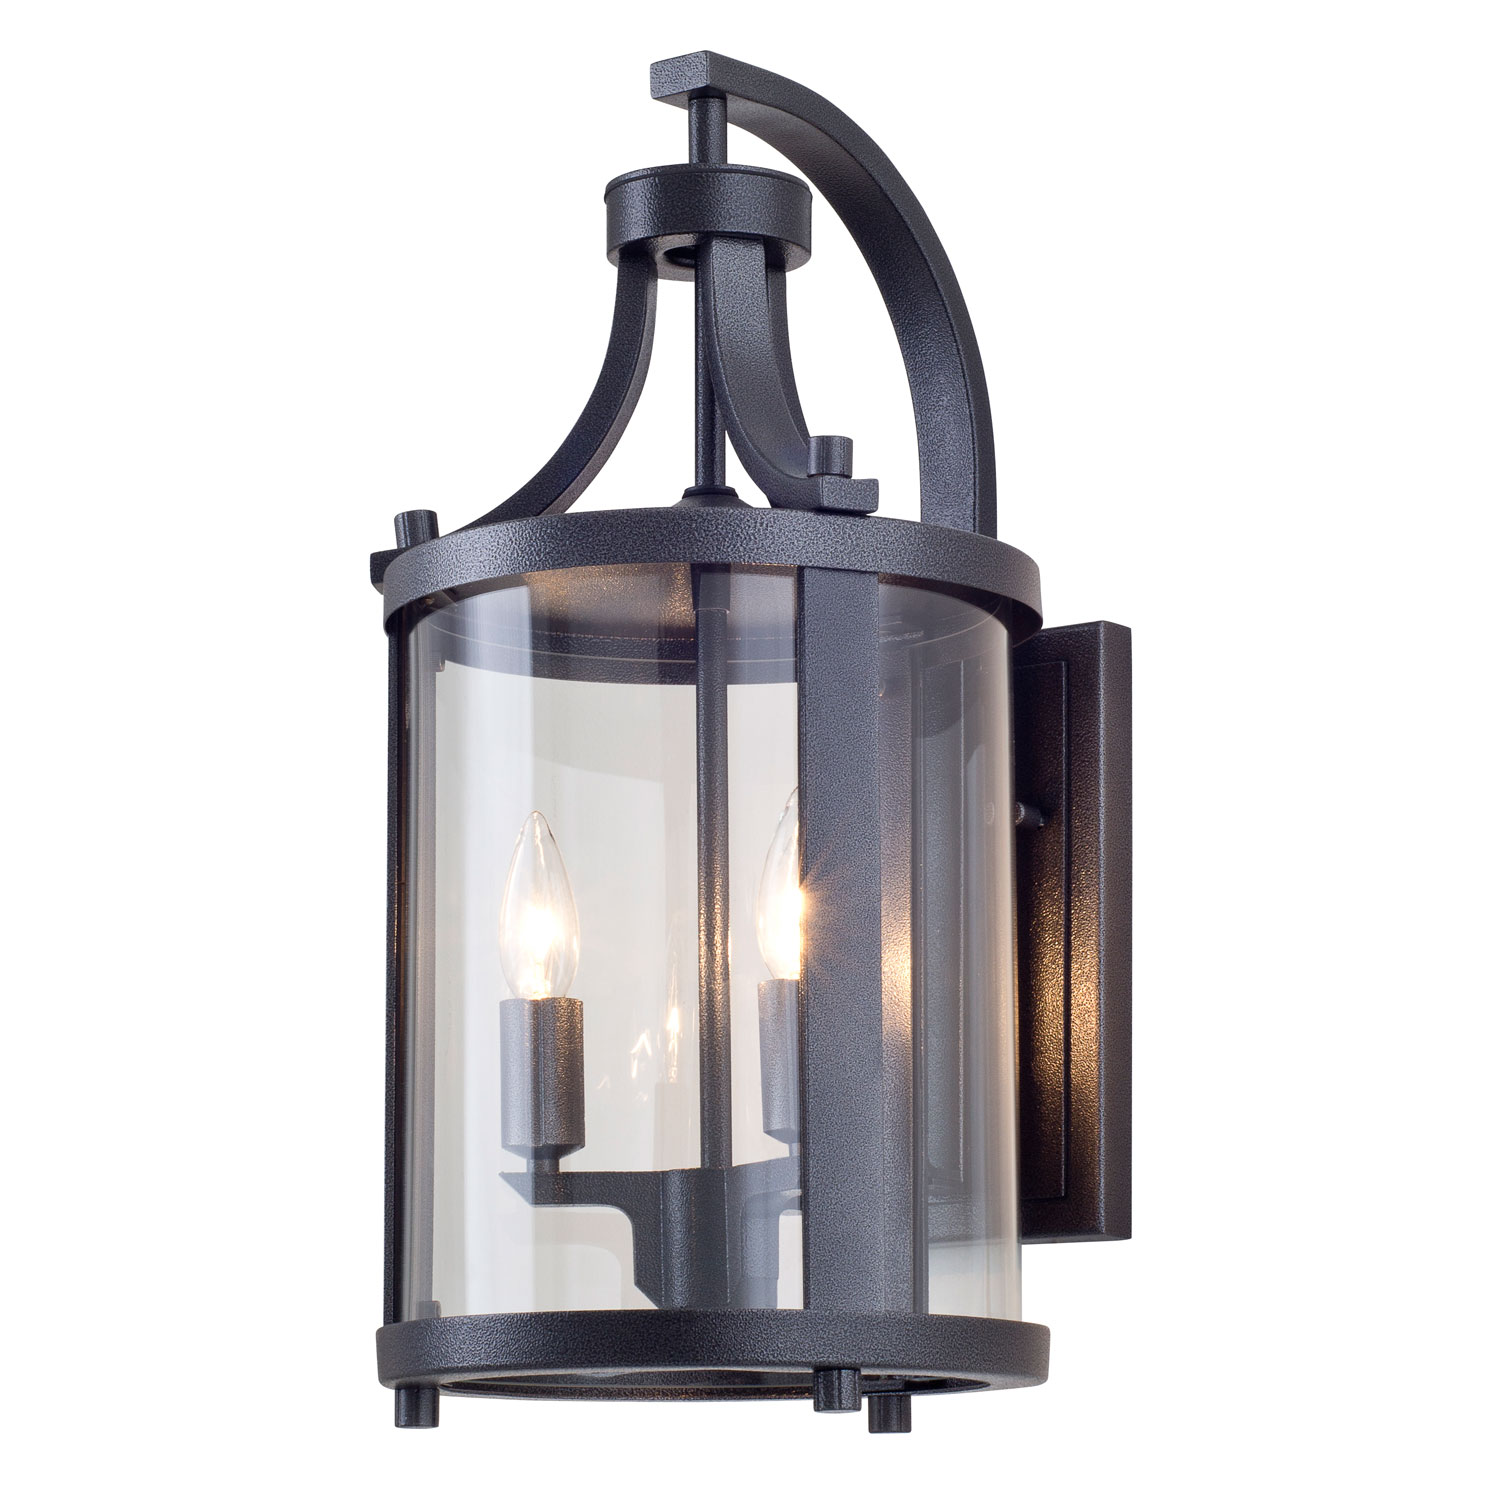 Add Decor To Your Outdoor Using Wall Mounted Light Fixtures Warisan Lighting